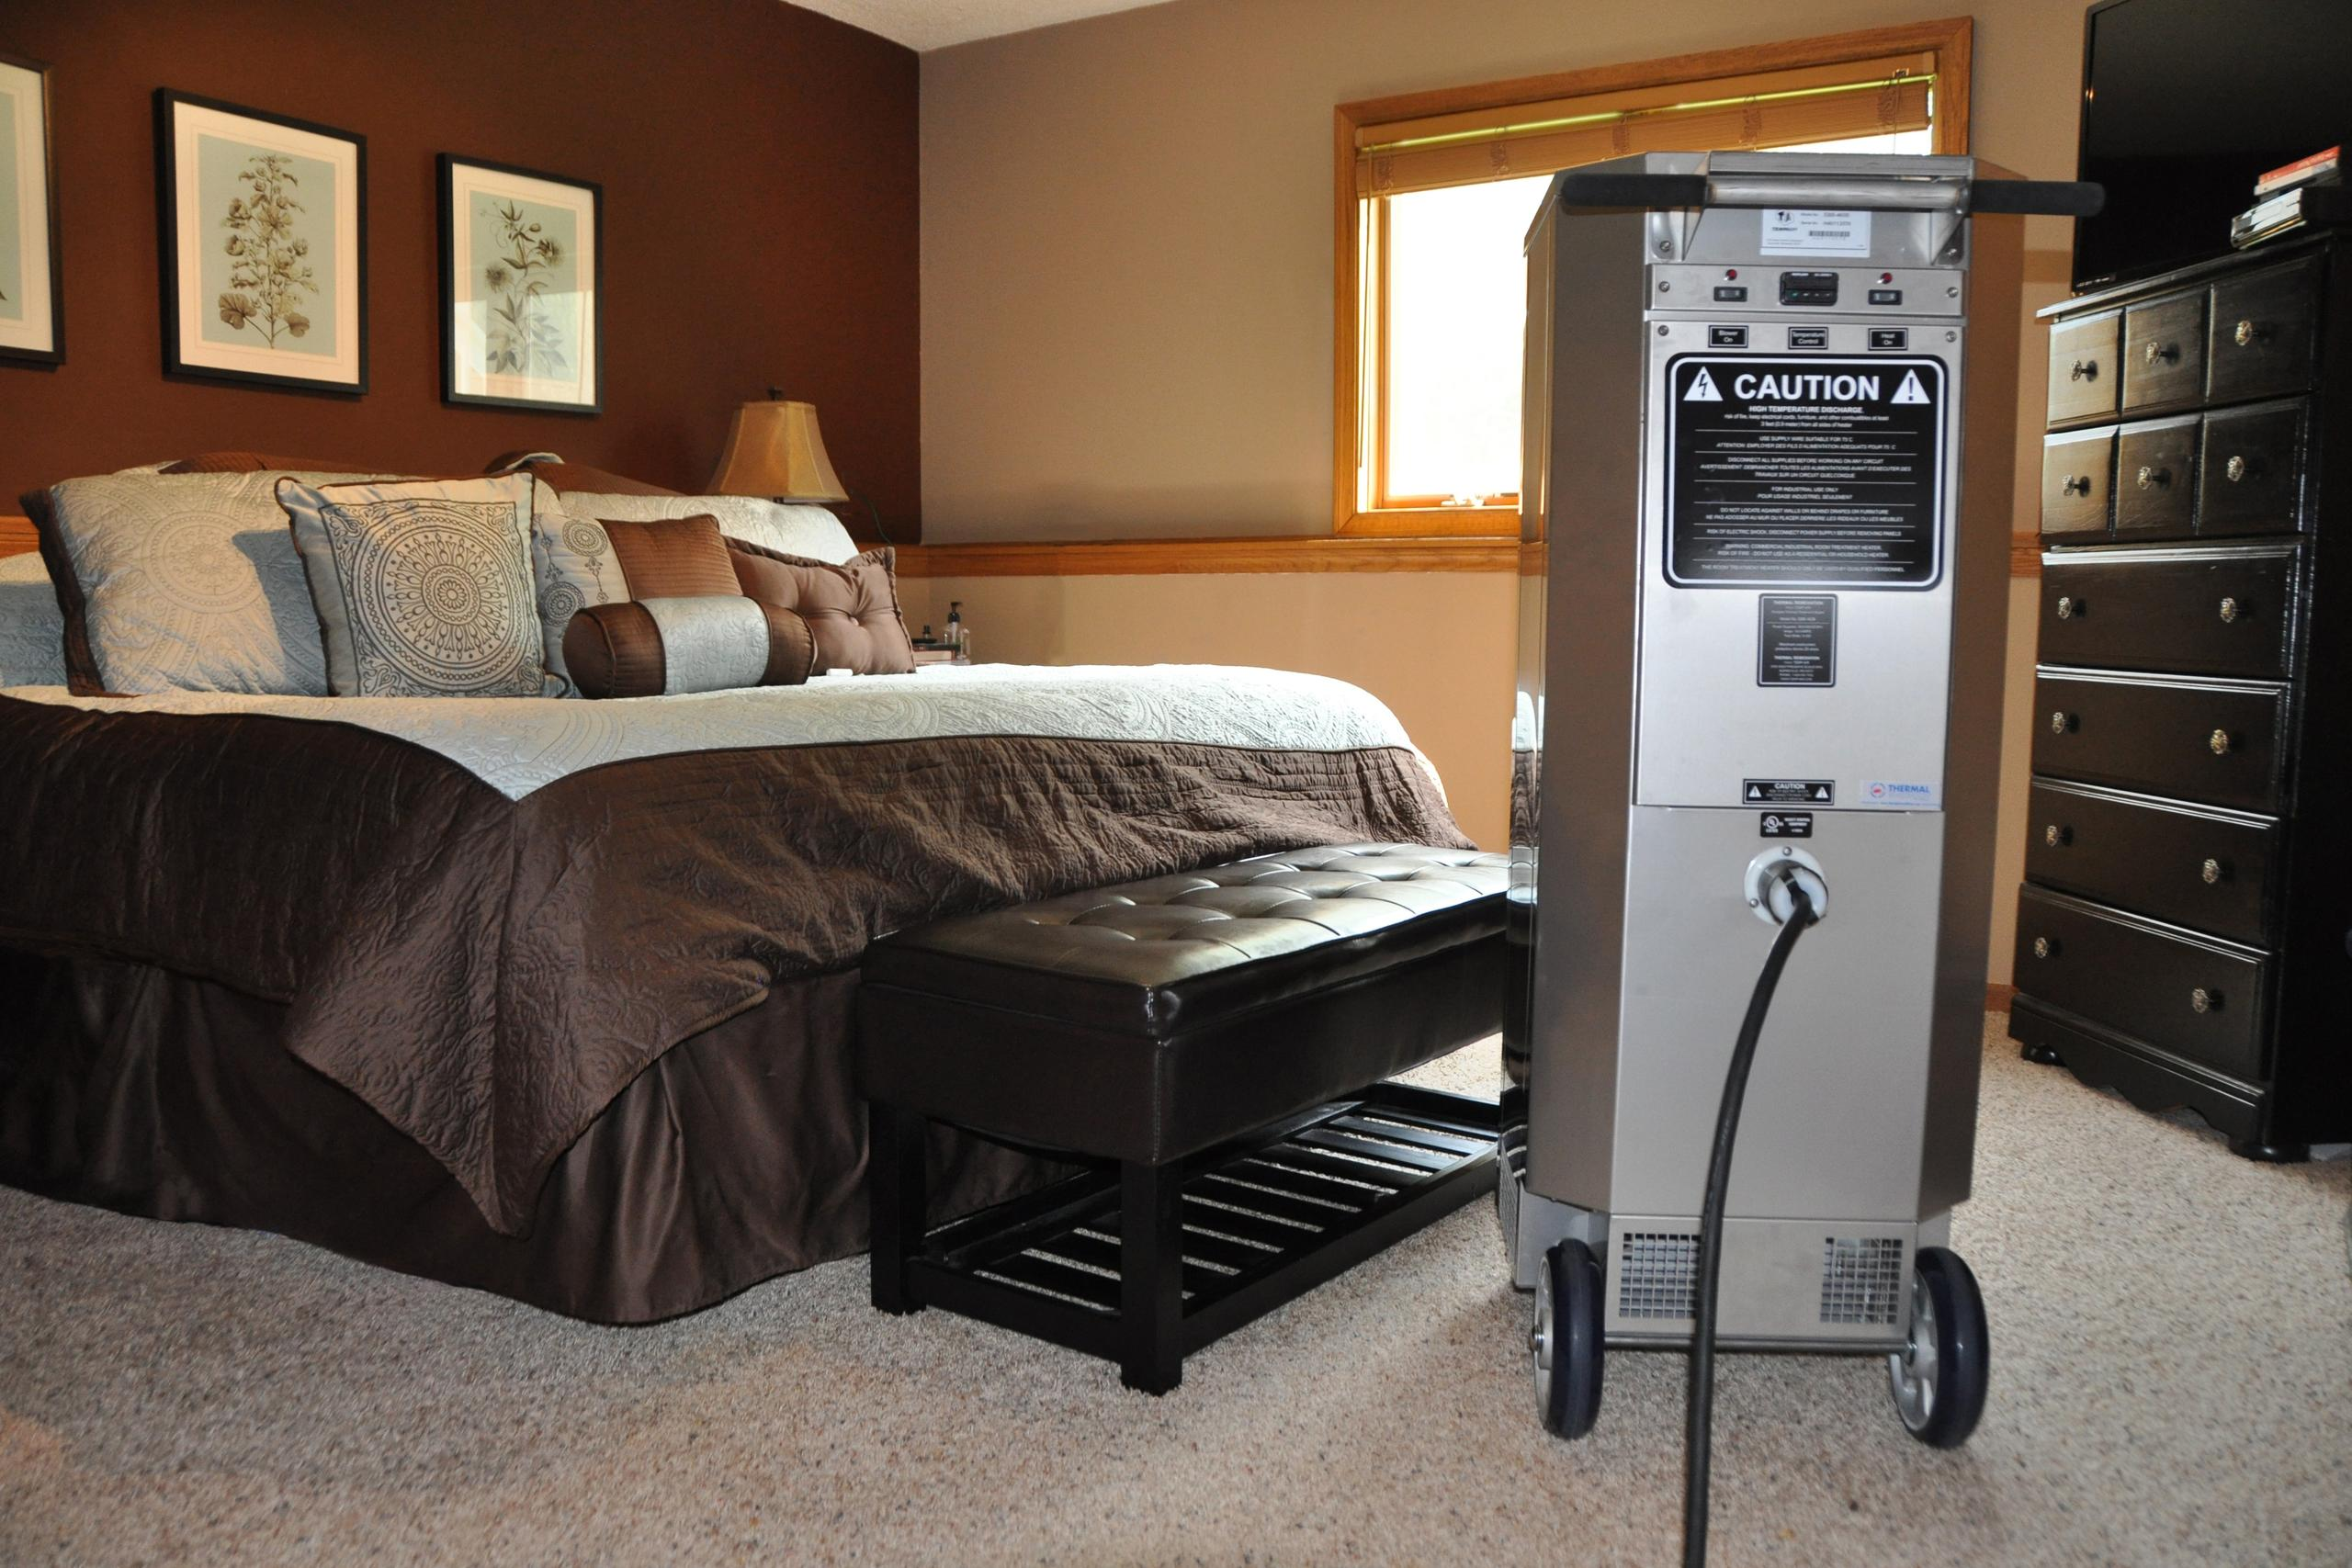 Bed bug heat equipment sits ready for use inside a bedroom